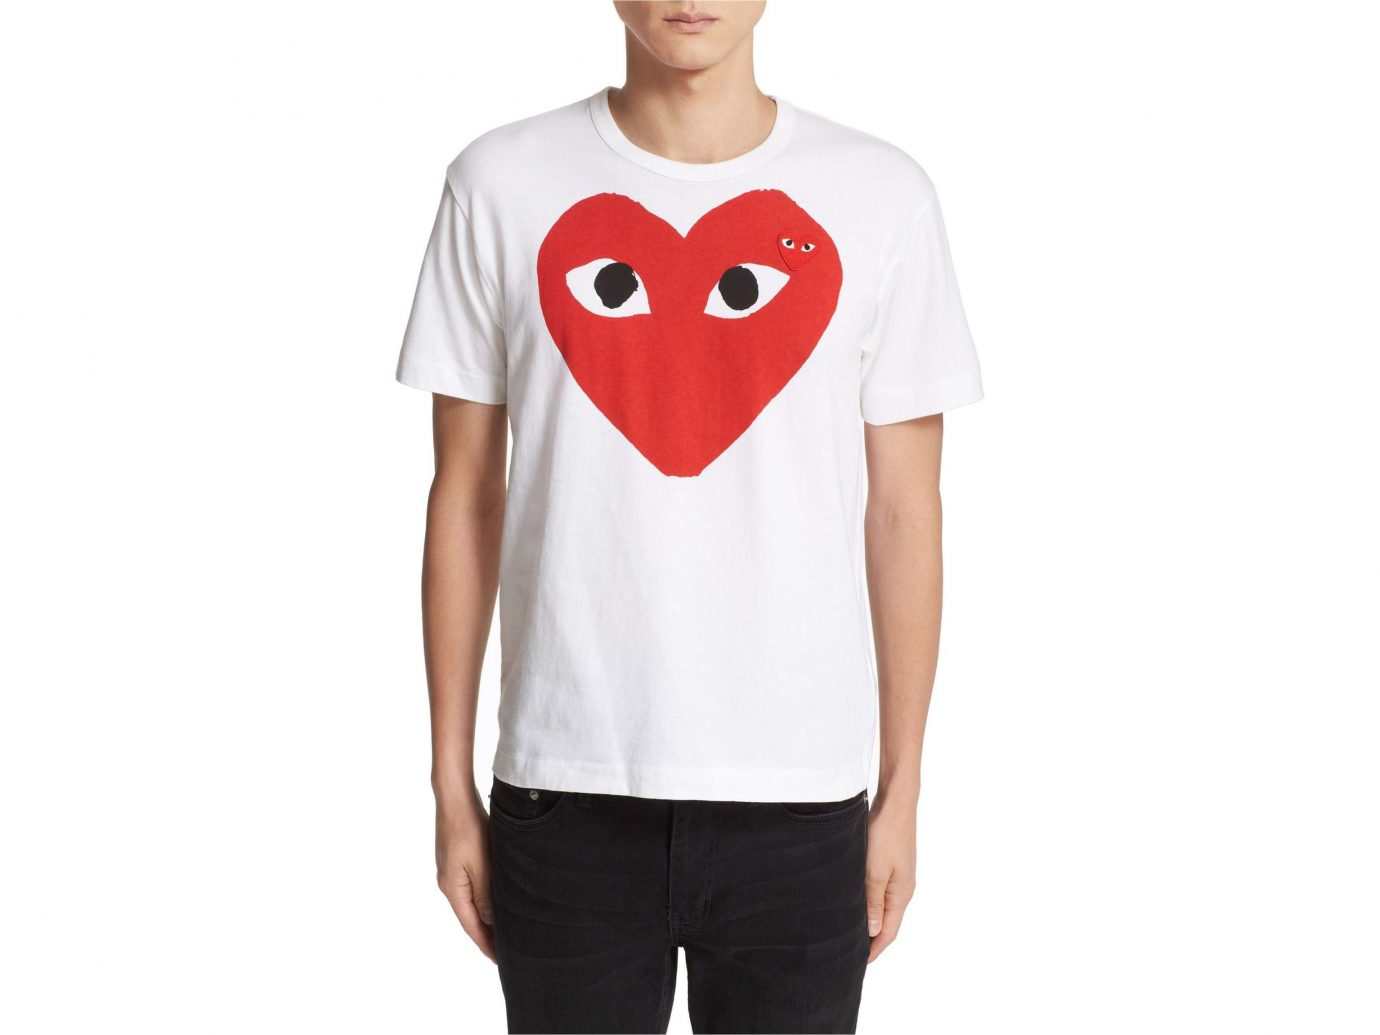 Gift Guides Travel Shop person clothing white t shirt sleeve shoulder standing organ neck smile joint top product font heart